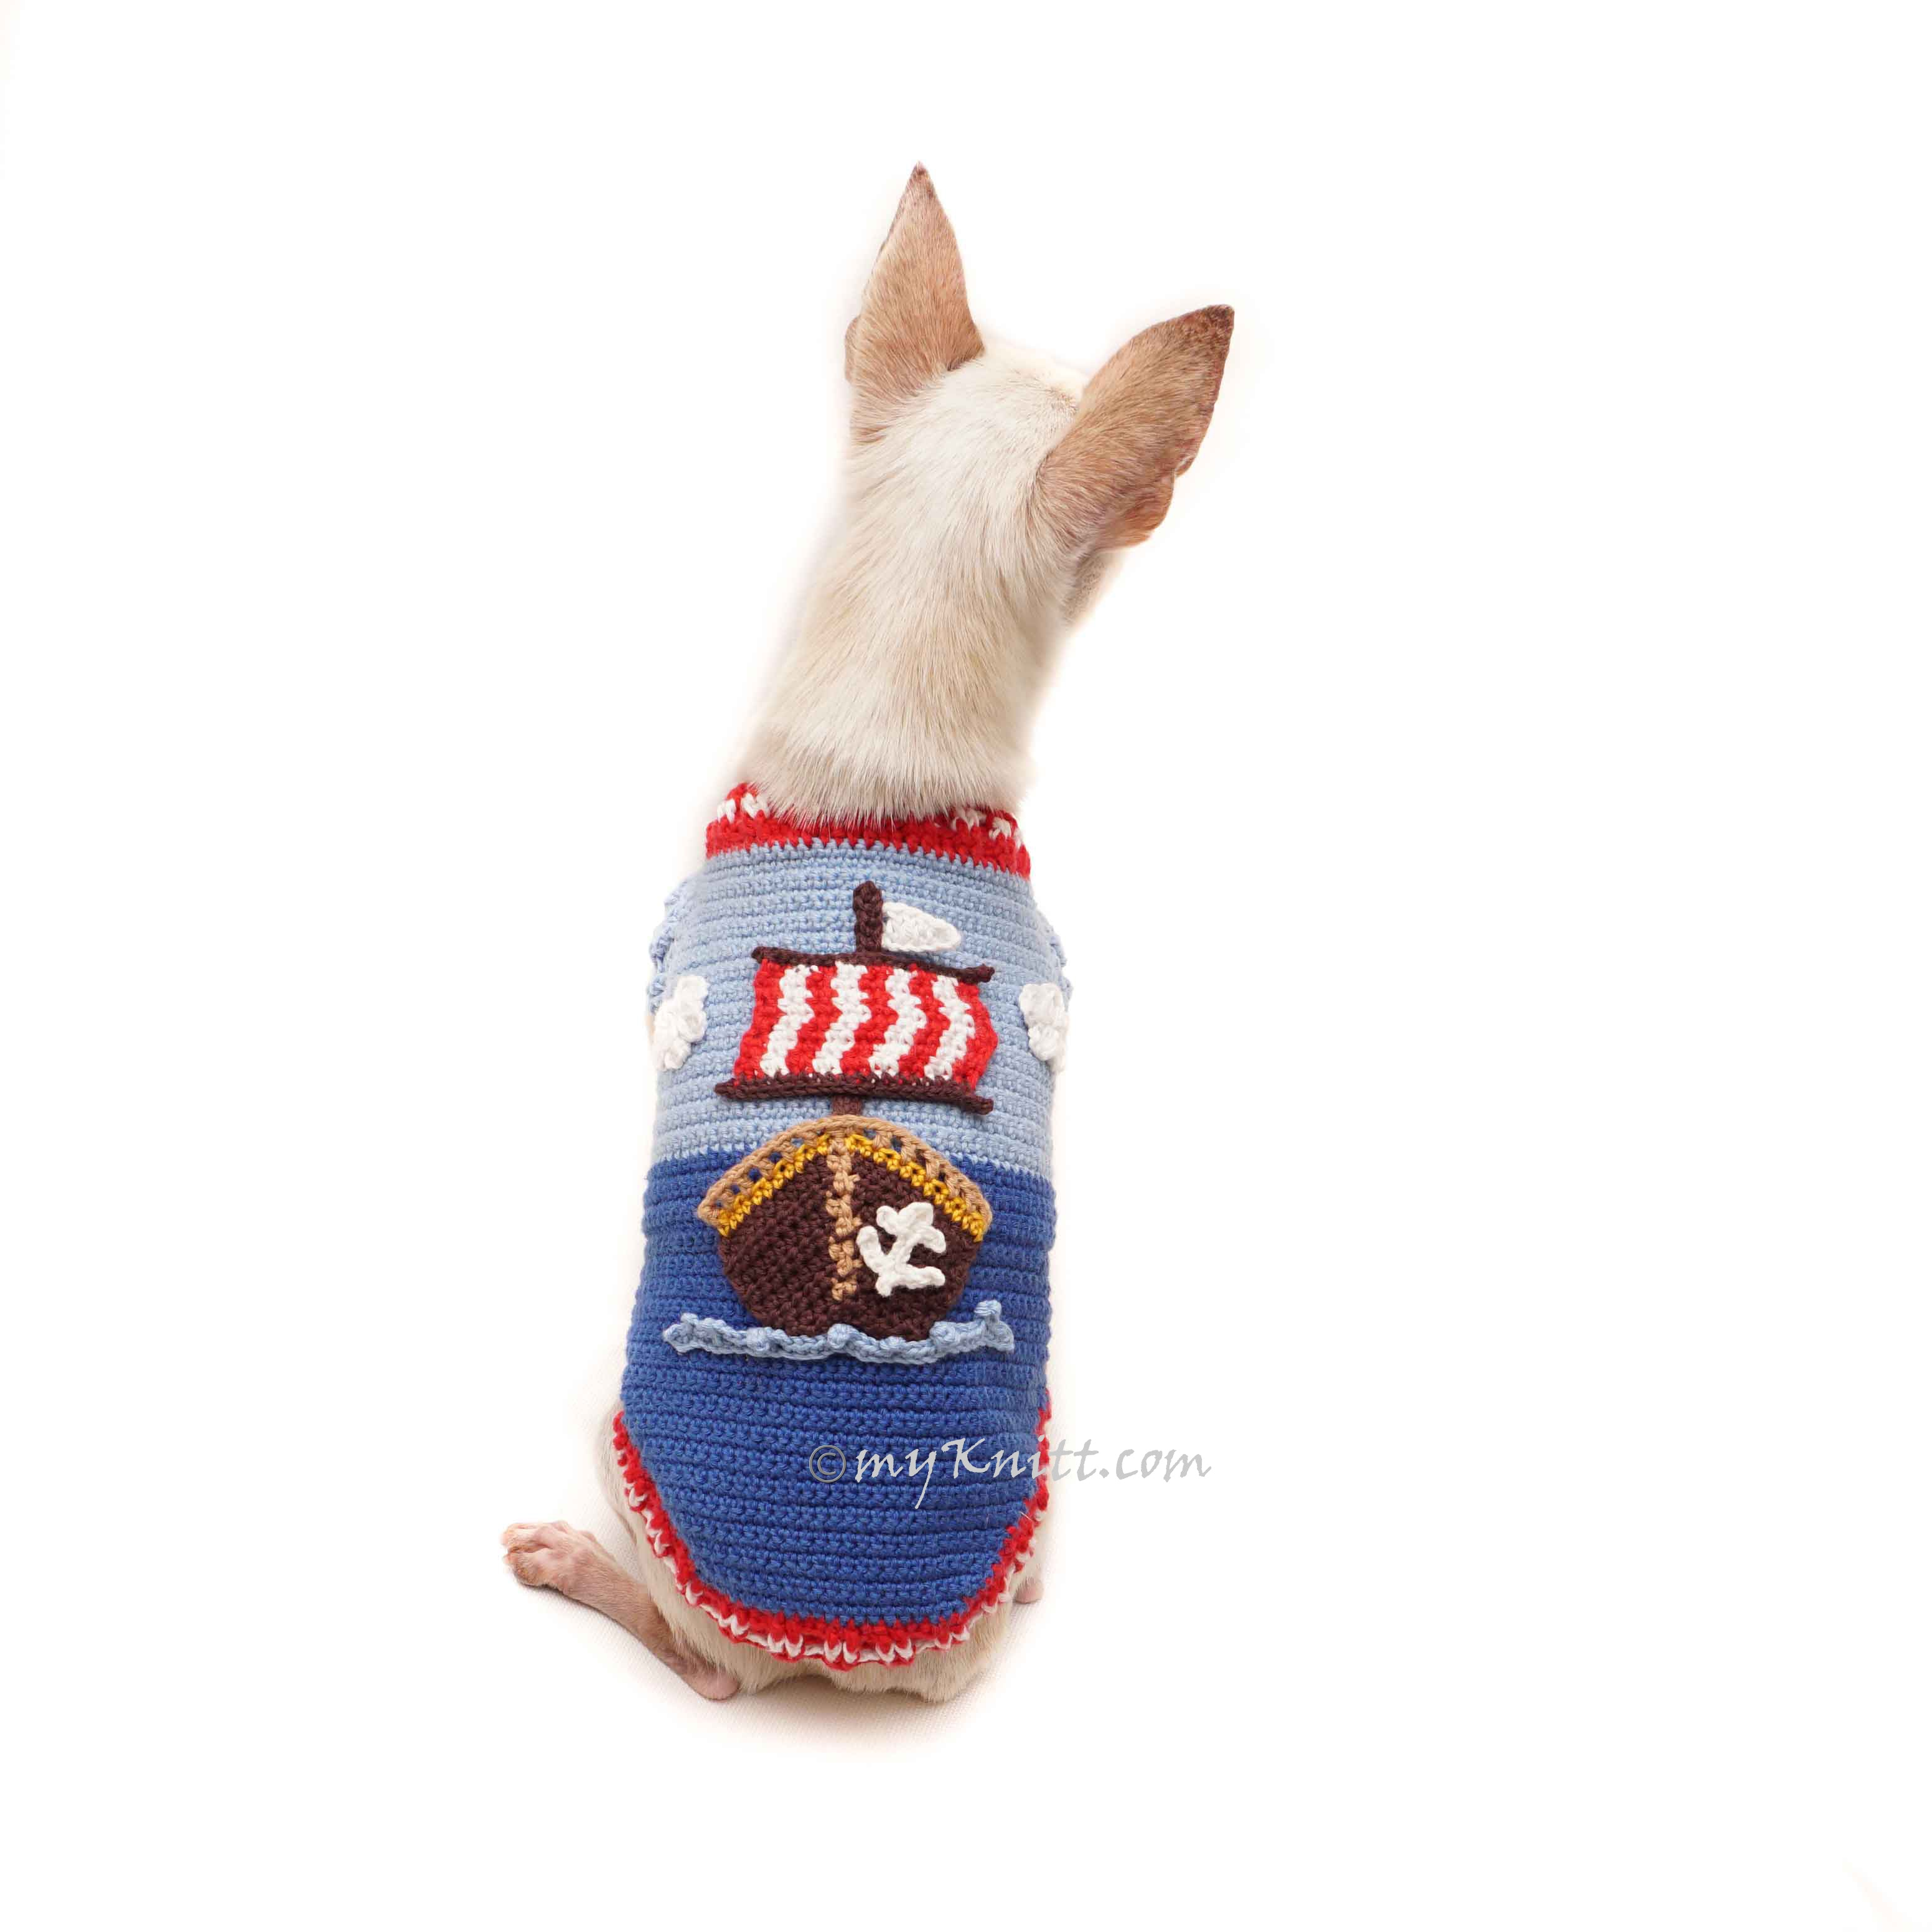 Aye Aye Captain Sailor Pirates Dog Costume Crochet DF167 Myknitt